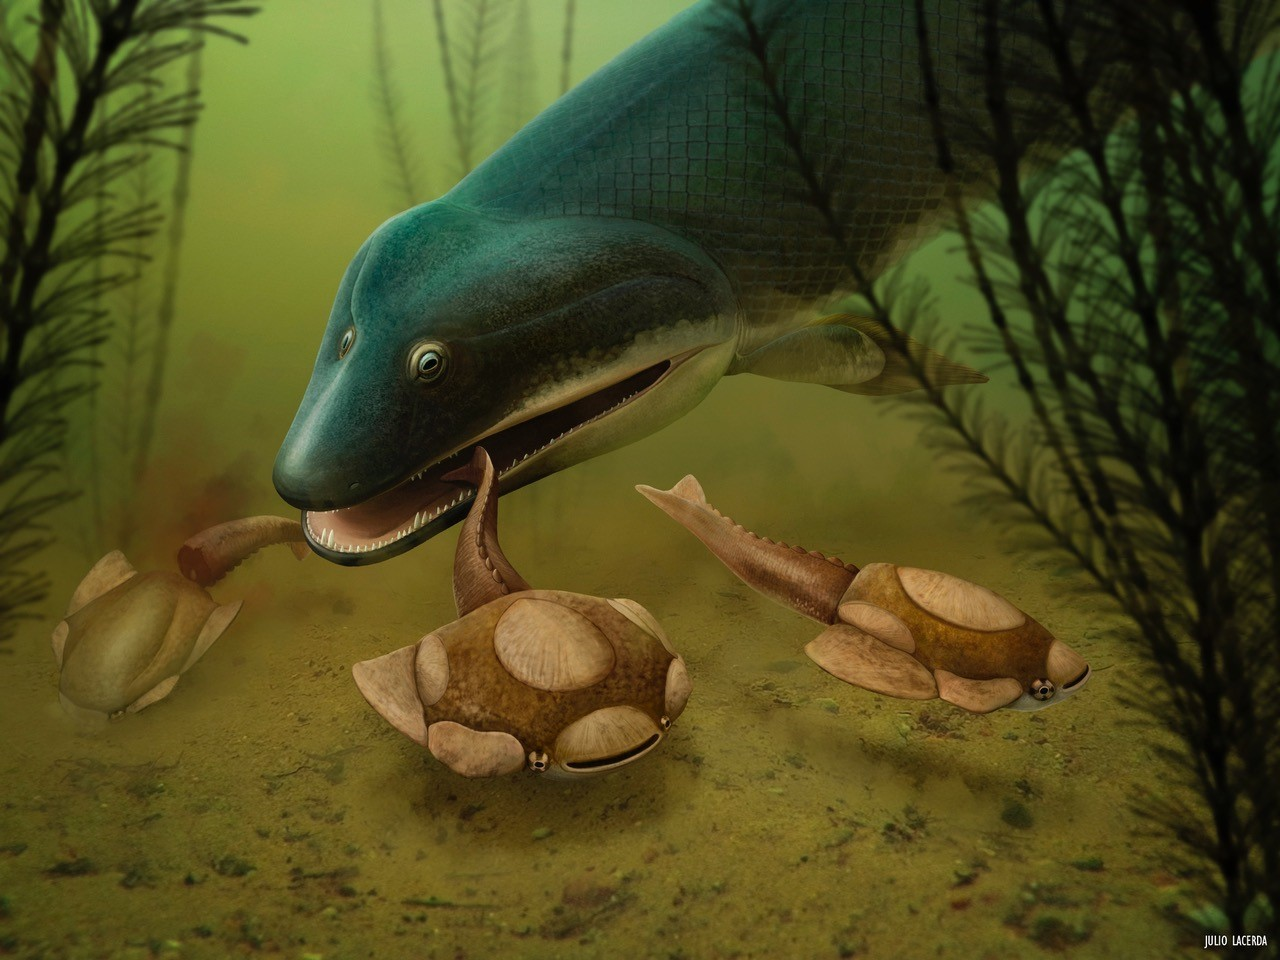 Predation of heterostracans by Panderichthys in a Devonian ocean. Artwork by Julio Lacerda